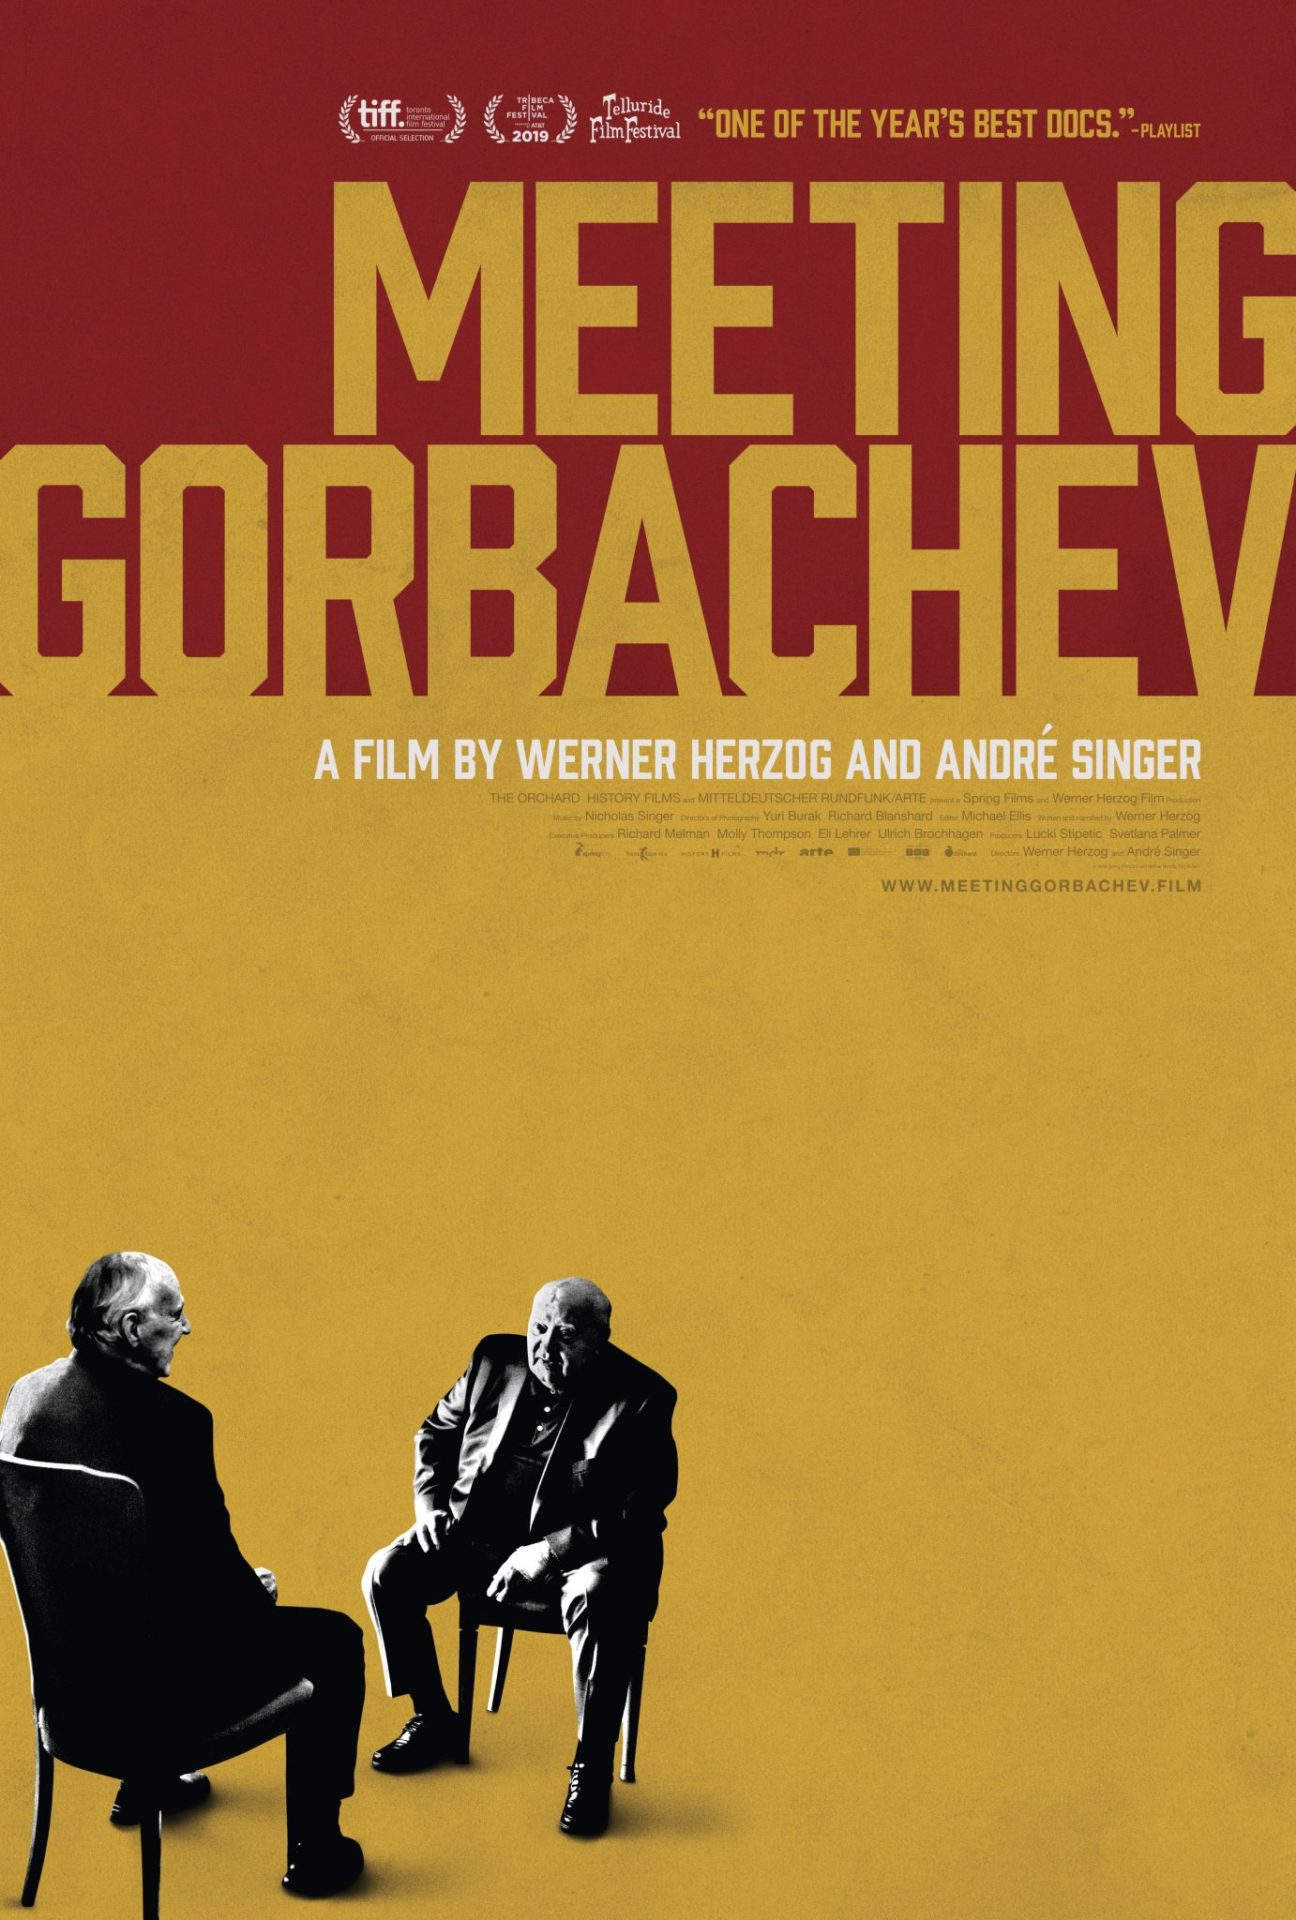 MEETING_GORBACHEV_keyart